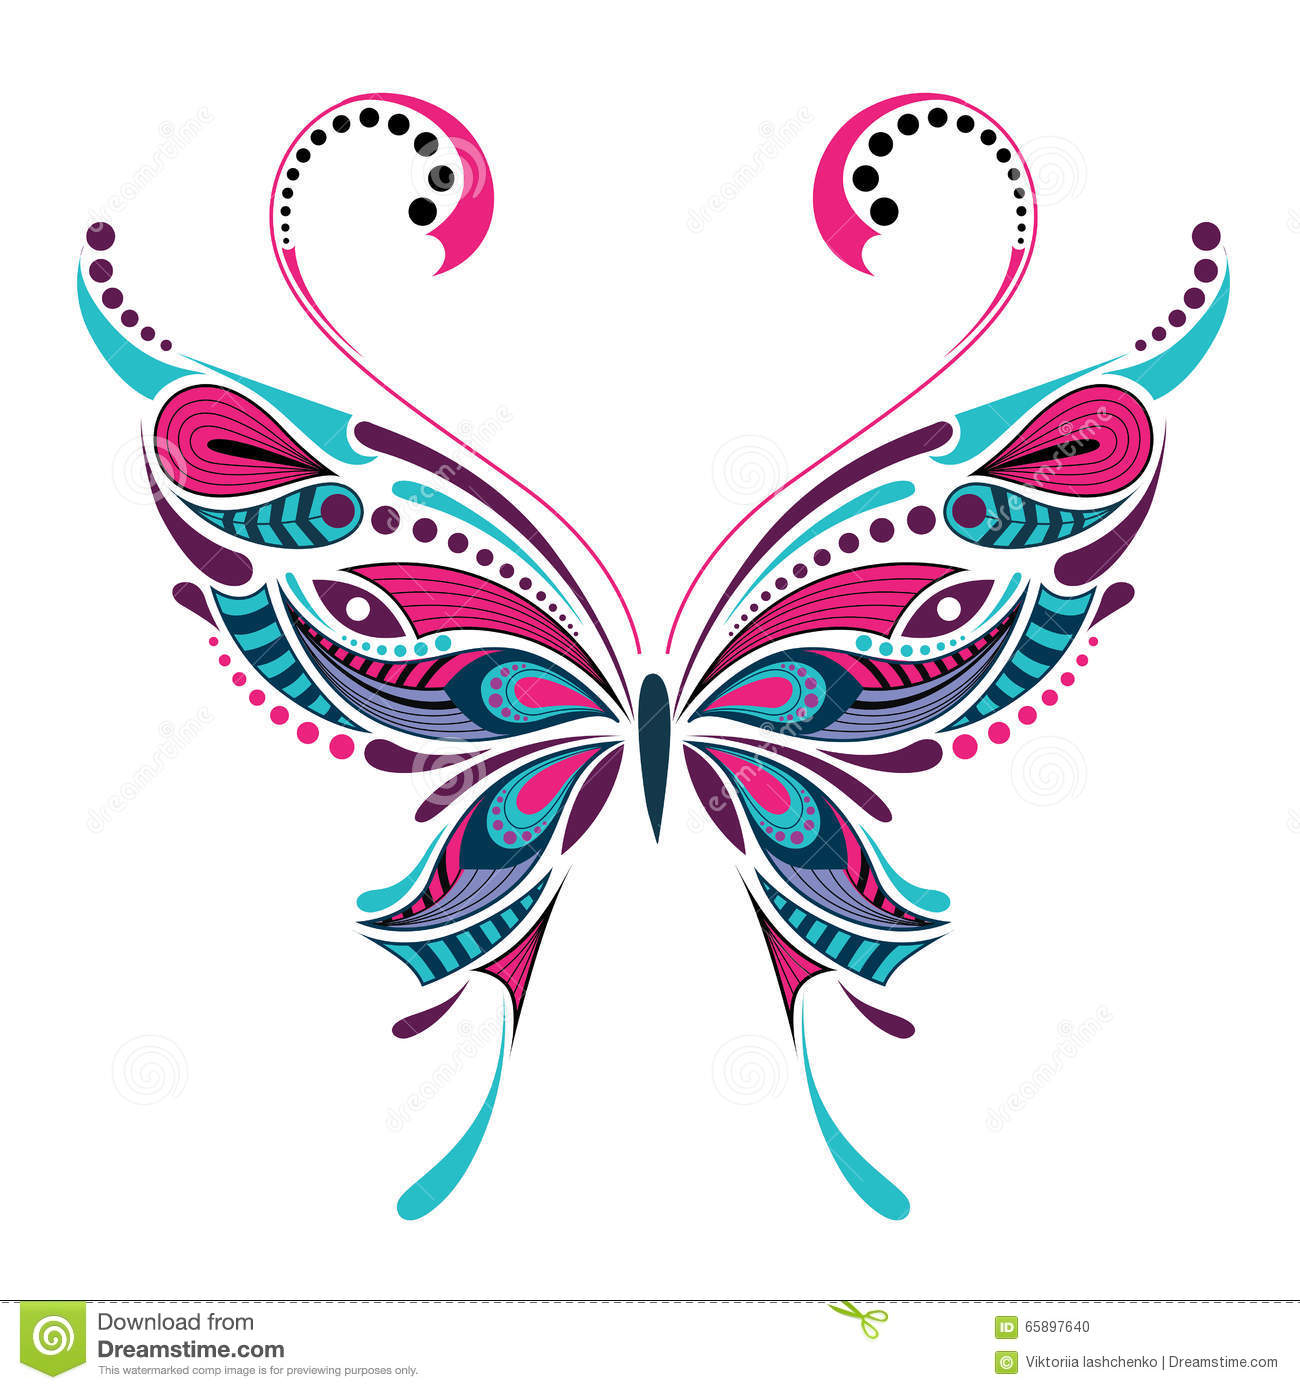 Patterned Colored Butterfly. African / Indian / Totem / Tattoo Design Stock Vector